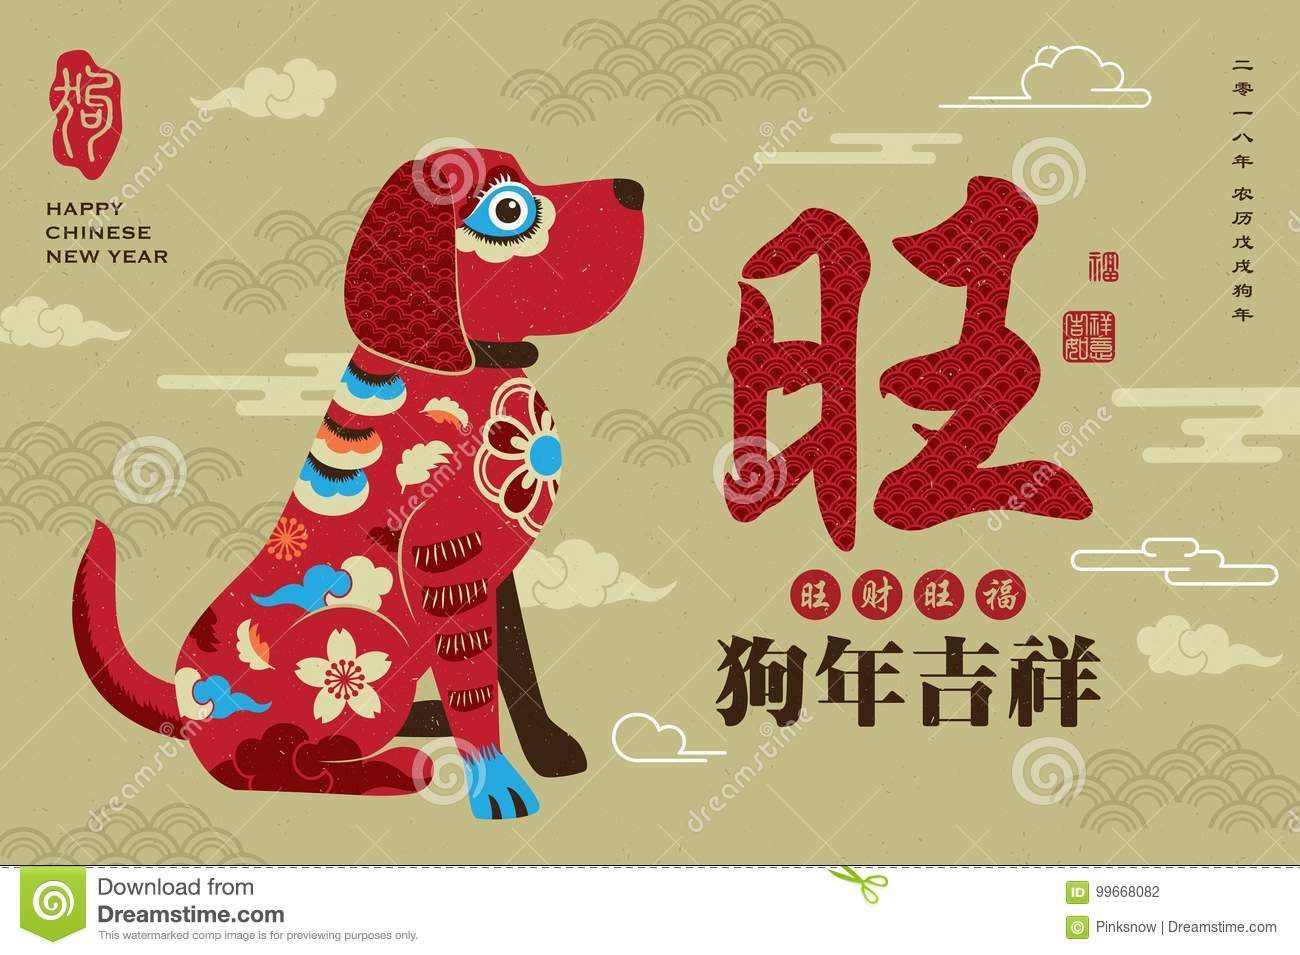 2018 chinese new year greeting card stock vector illustration of download 2018 chinese new year greeting card stock vector illustration of auspicious prosperous m4hsunfo